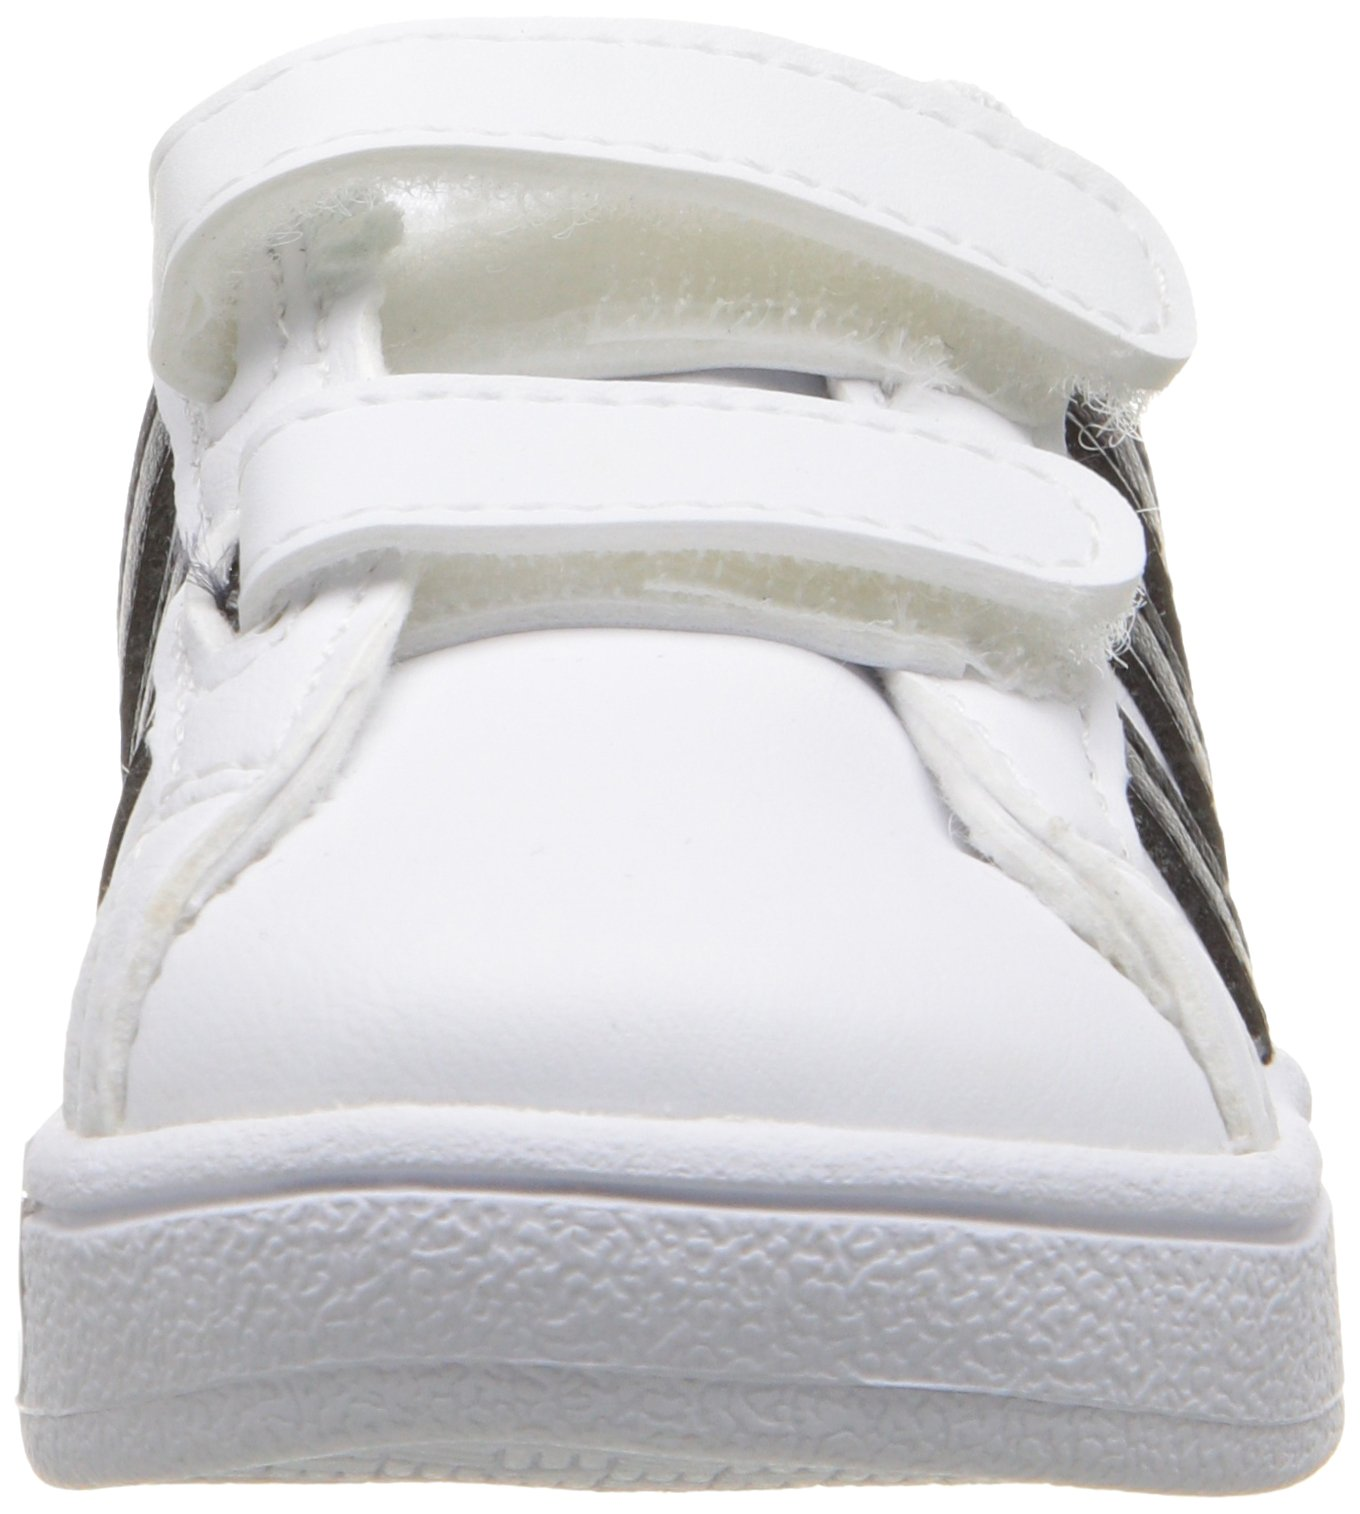 adidas Performance Baby Baseline Sneaker, White/Black/White, 6.5K M US Toddler by adidas (Image #4)